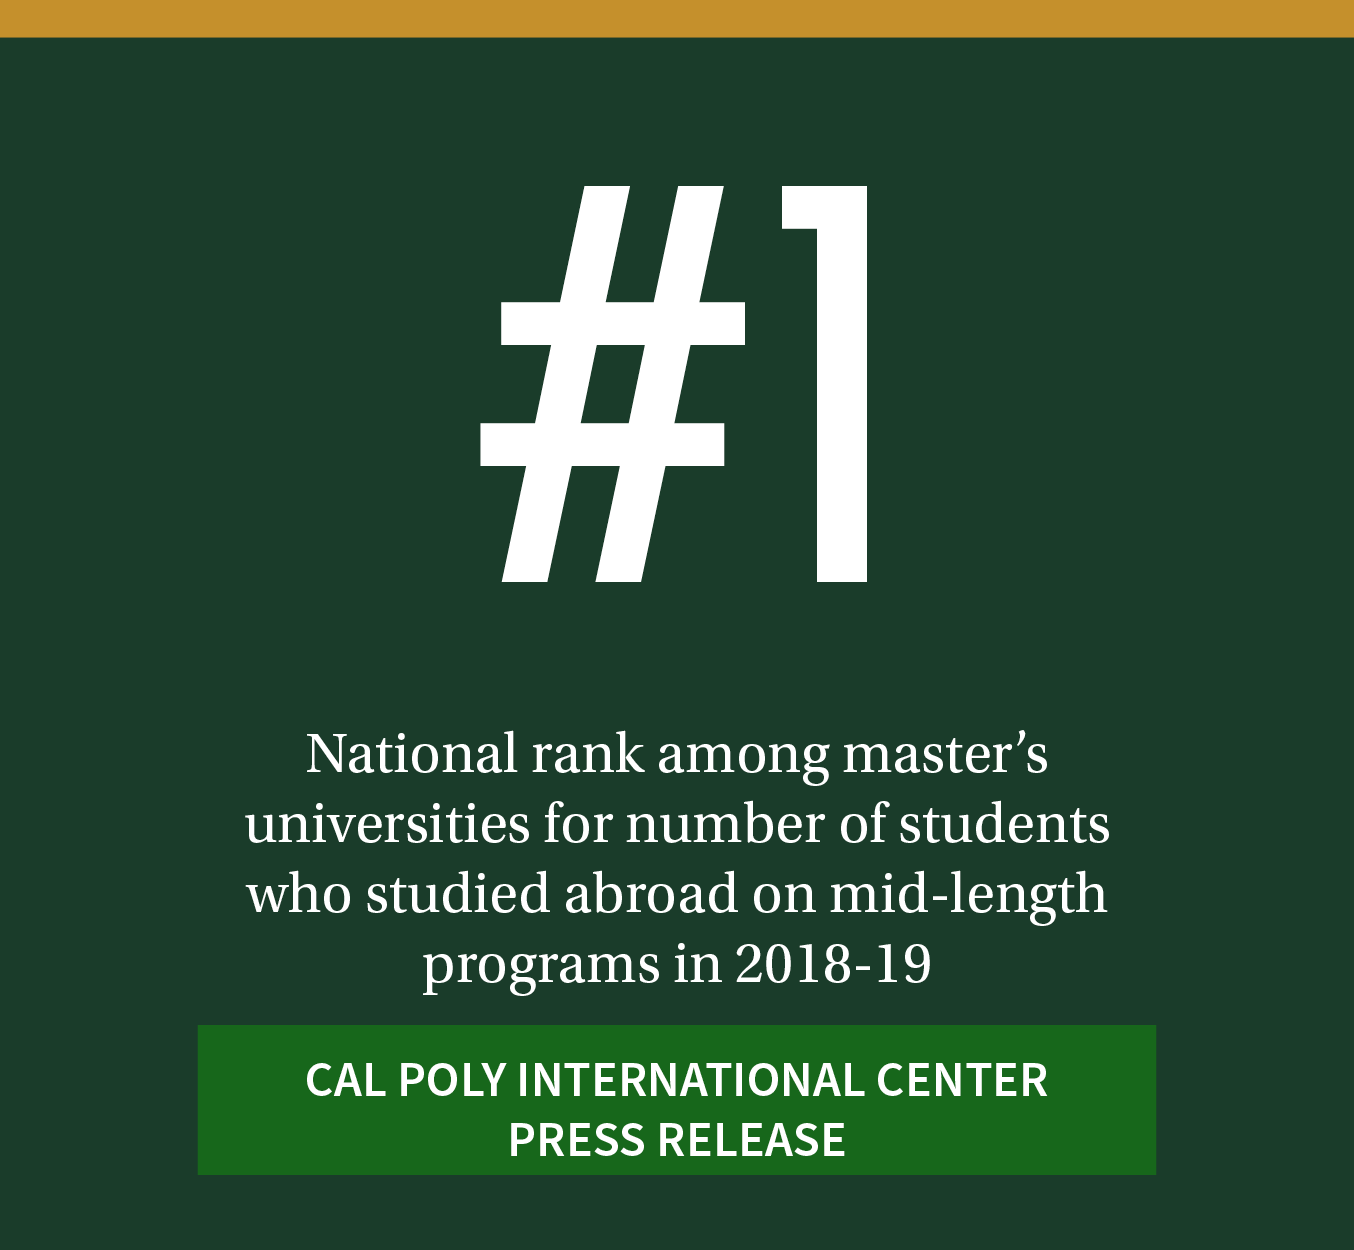 #1. National rank among master's universities for number of students who studied abroad on mid-length programs in 2018-19. Click here for the Cal Poly International Center press release.